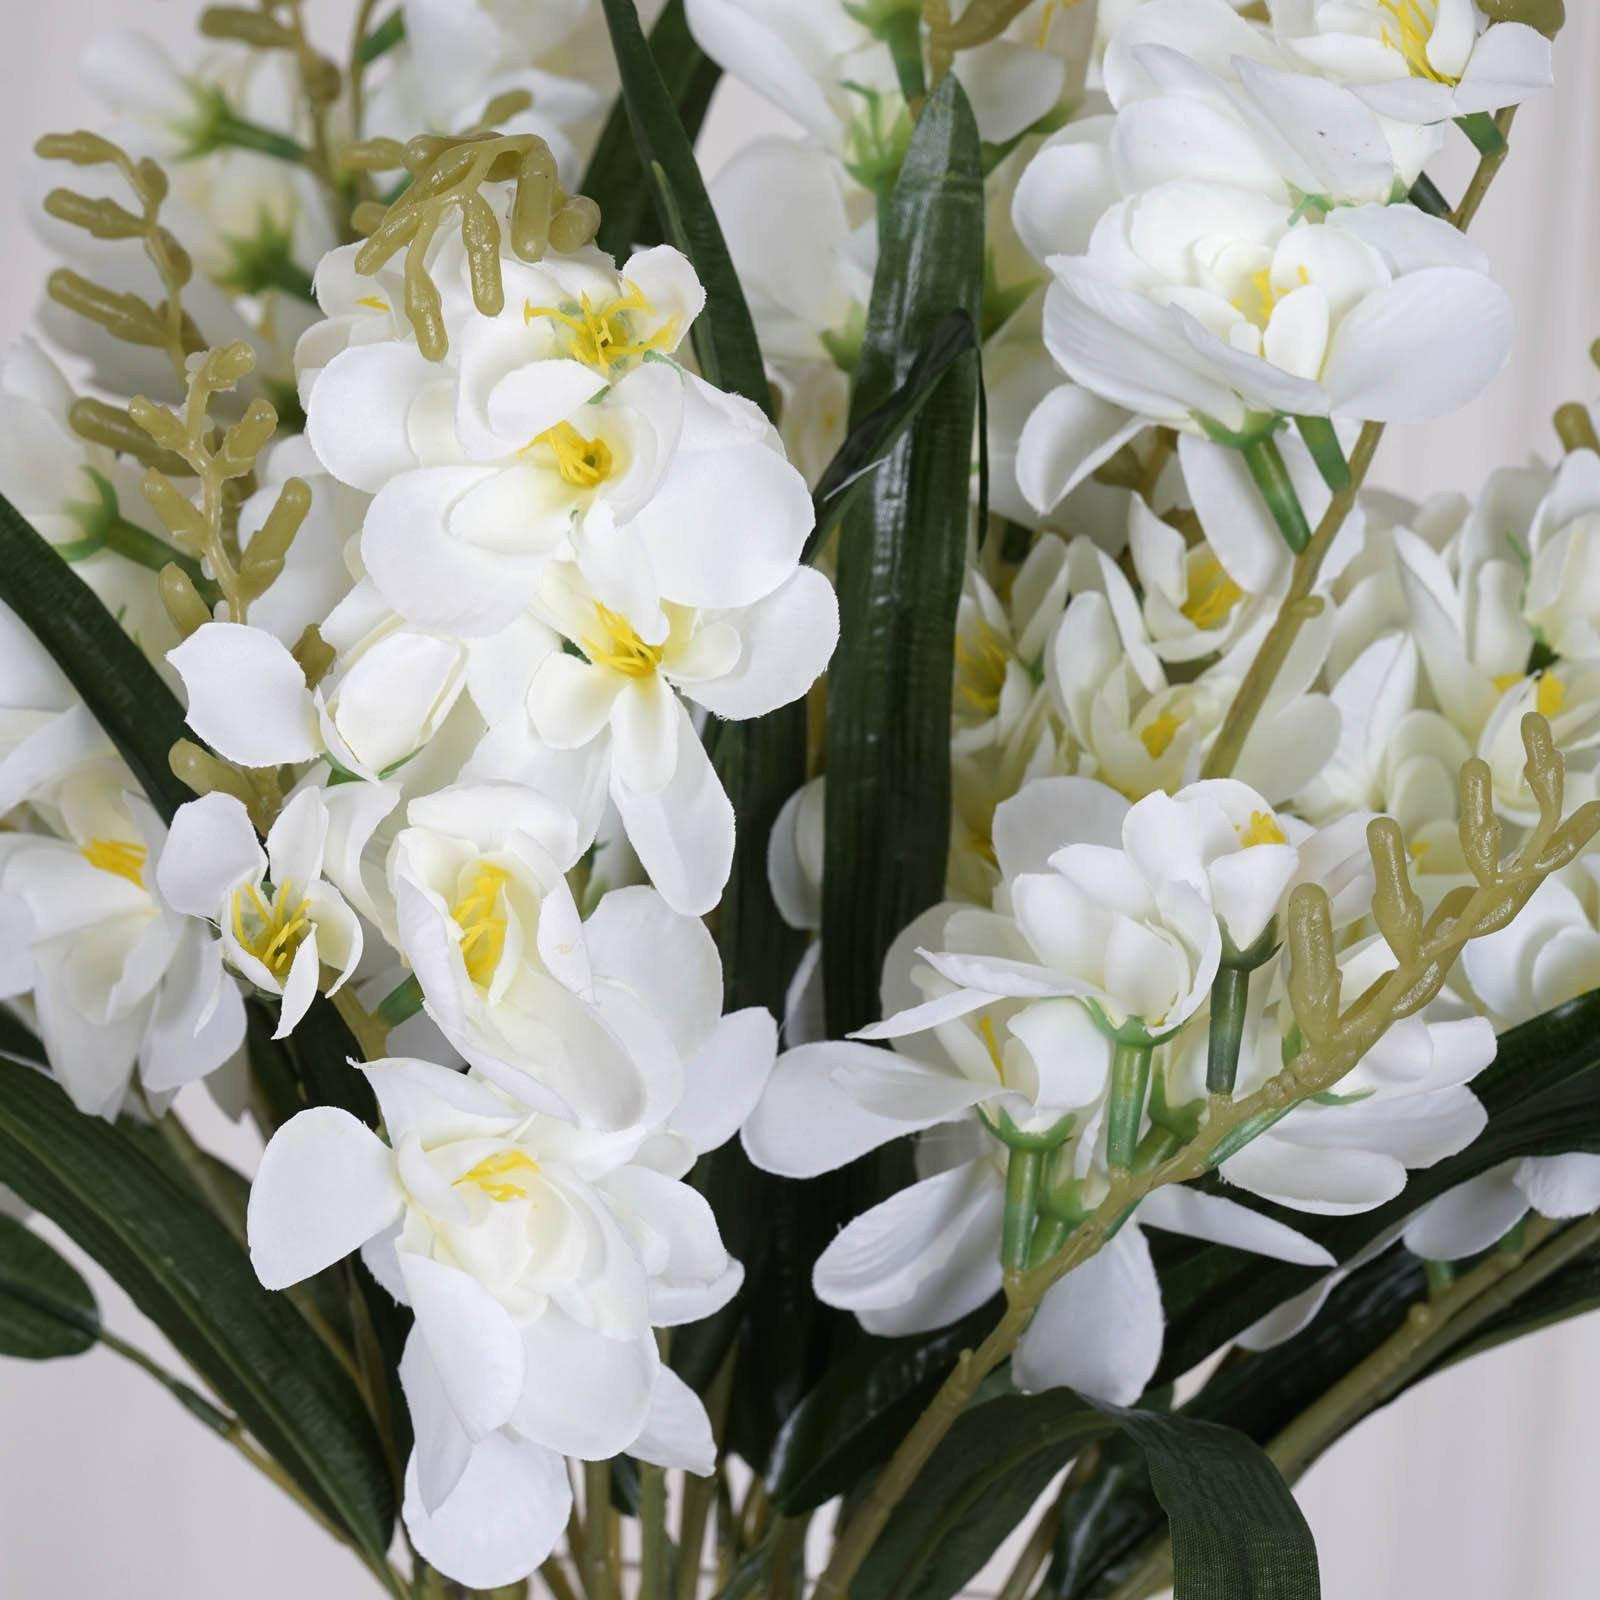 54 artificial freesia flower bushes wedding vase centerpiece decor 54 artificial freesia flower bushes wedding vase centerpiece decor cream izmirmasajfo